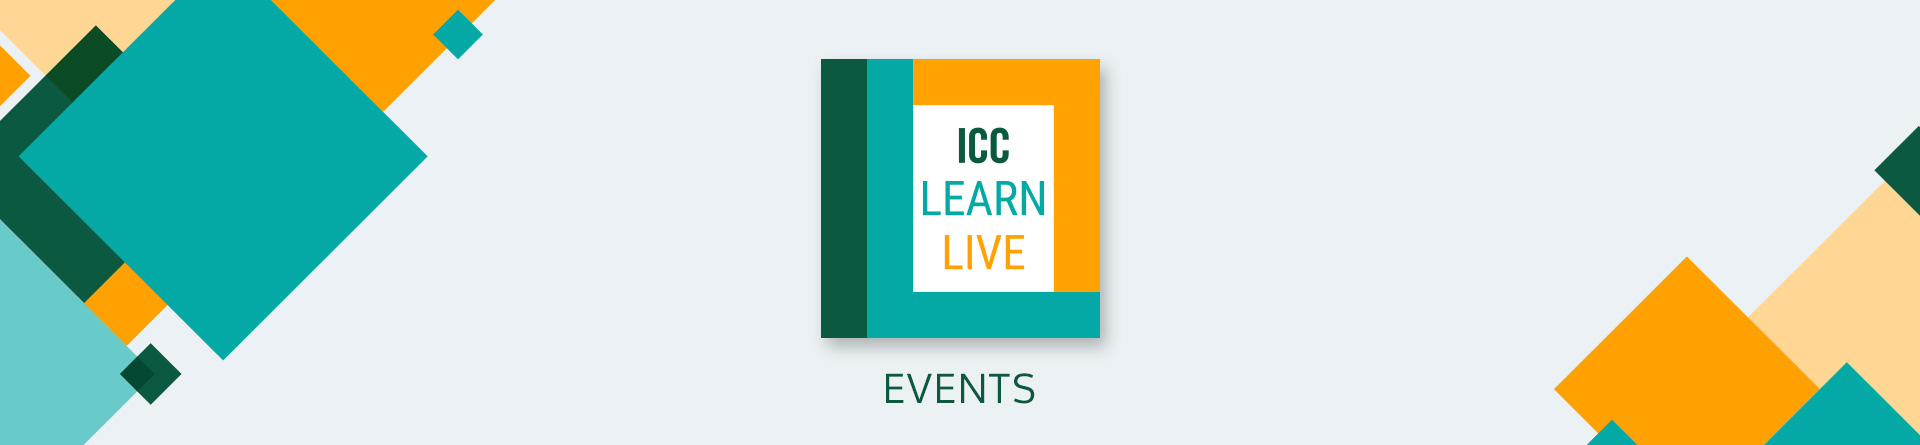 ICC Learn Live Events